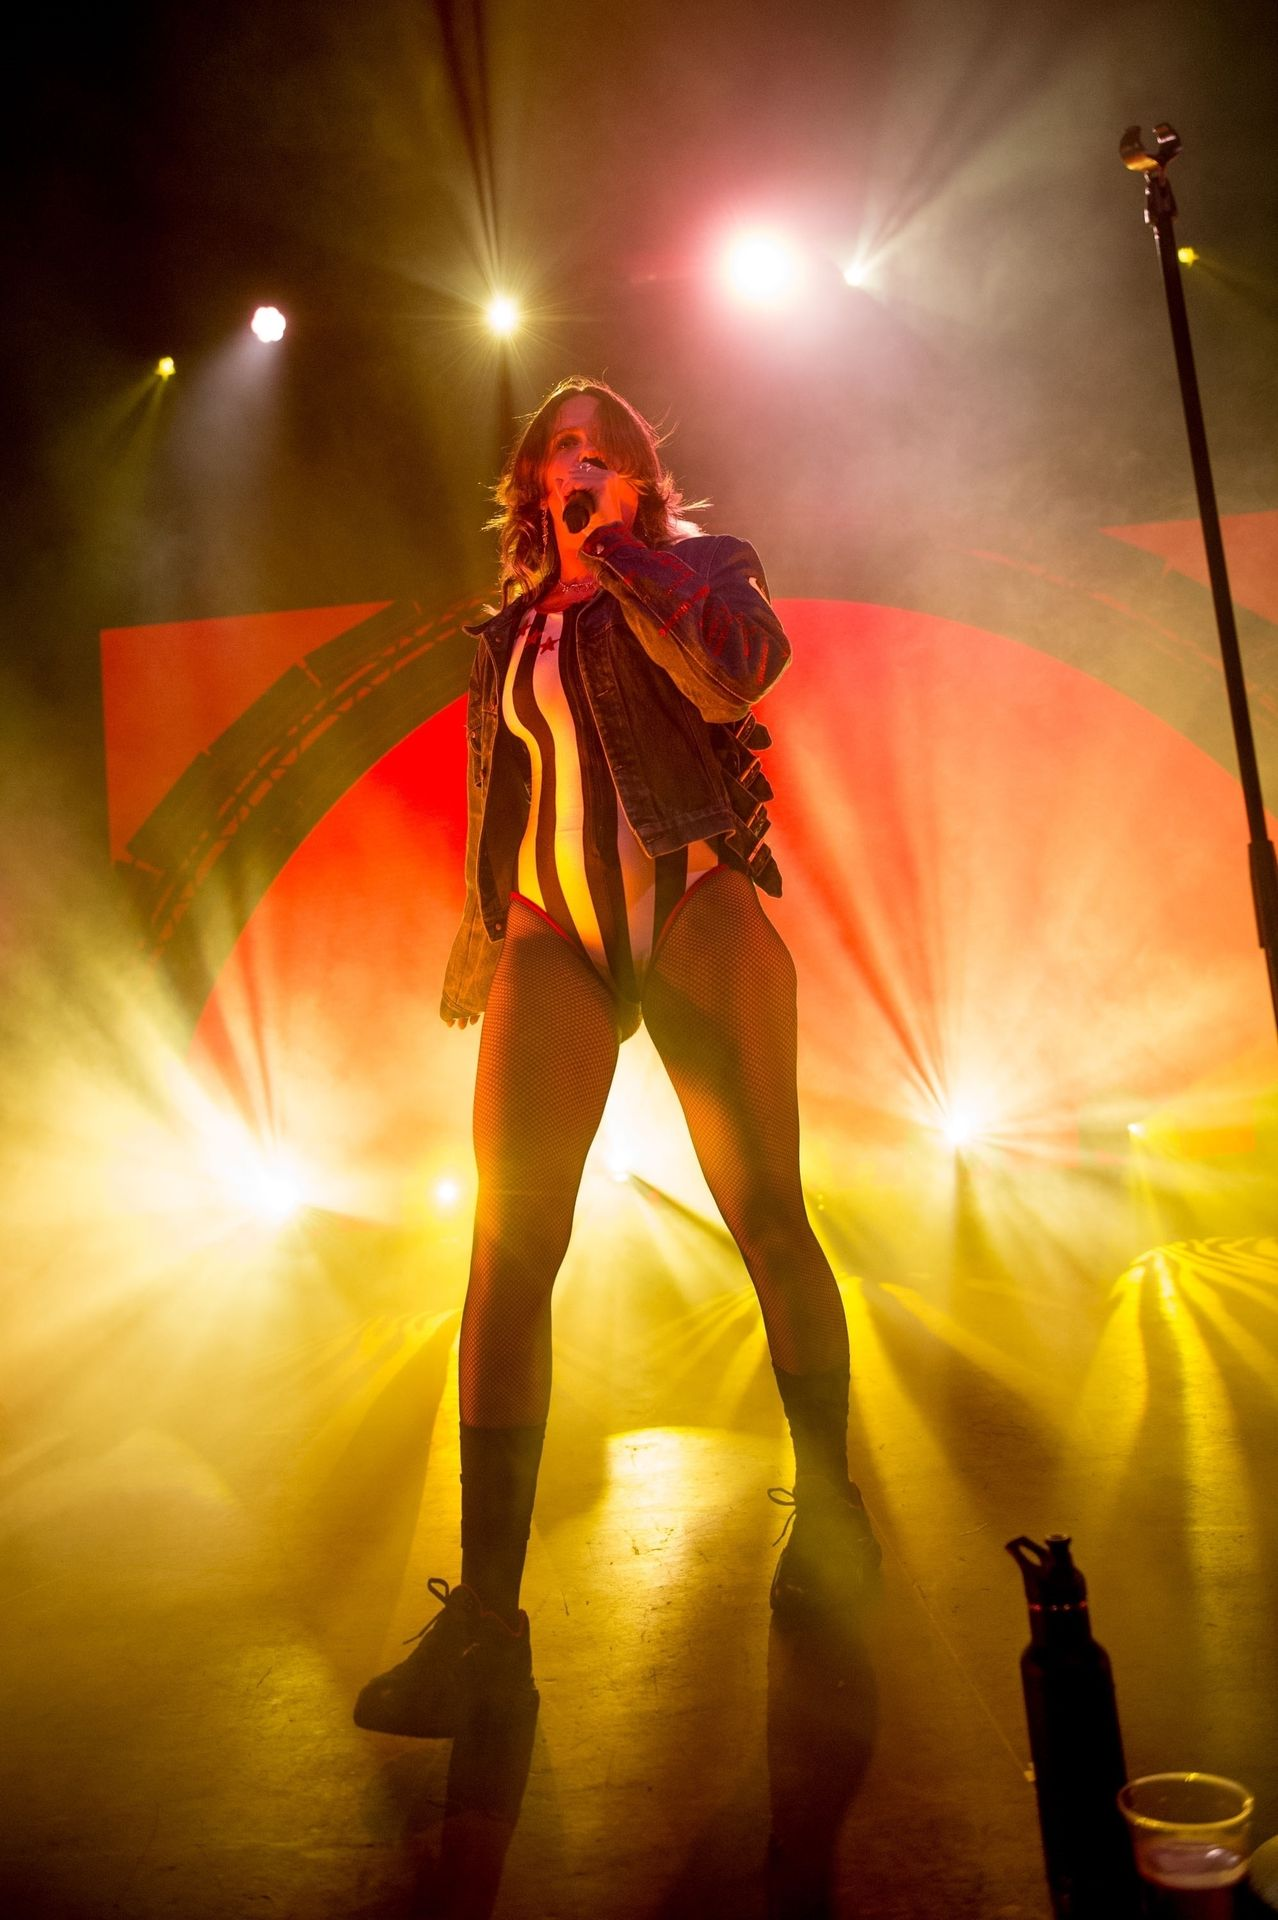 Tove Lo Is In Concert Performing Live At O2 Forum Kentish Town In London 0013